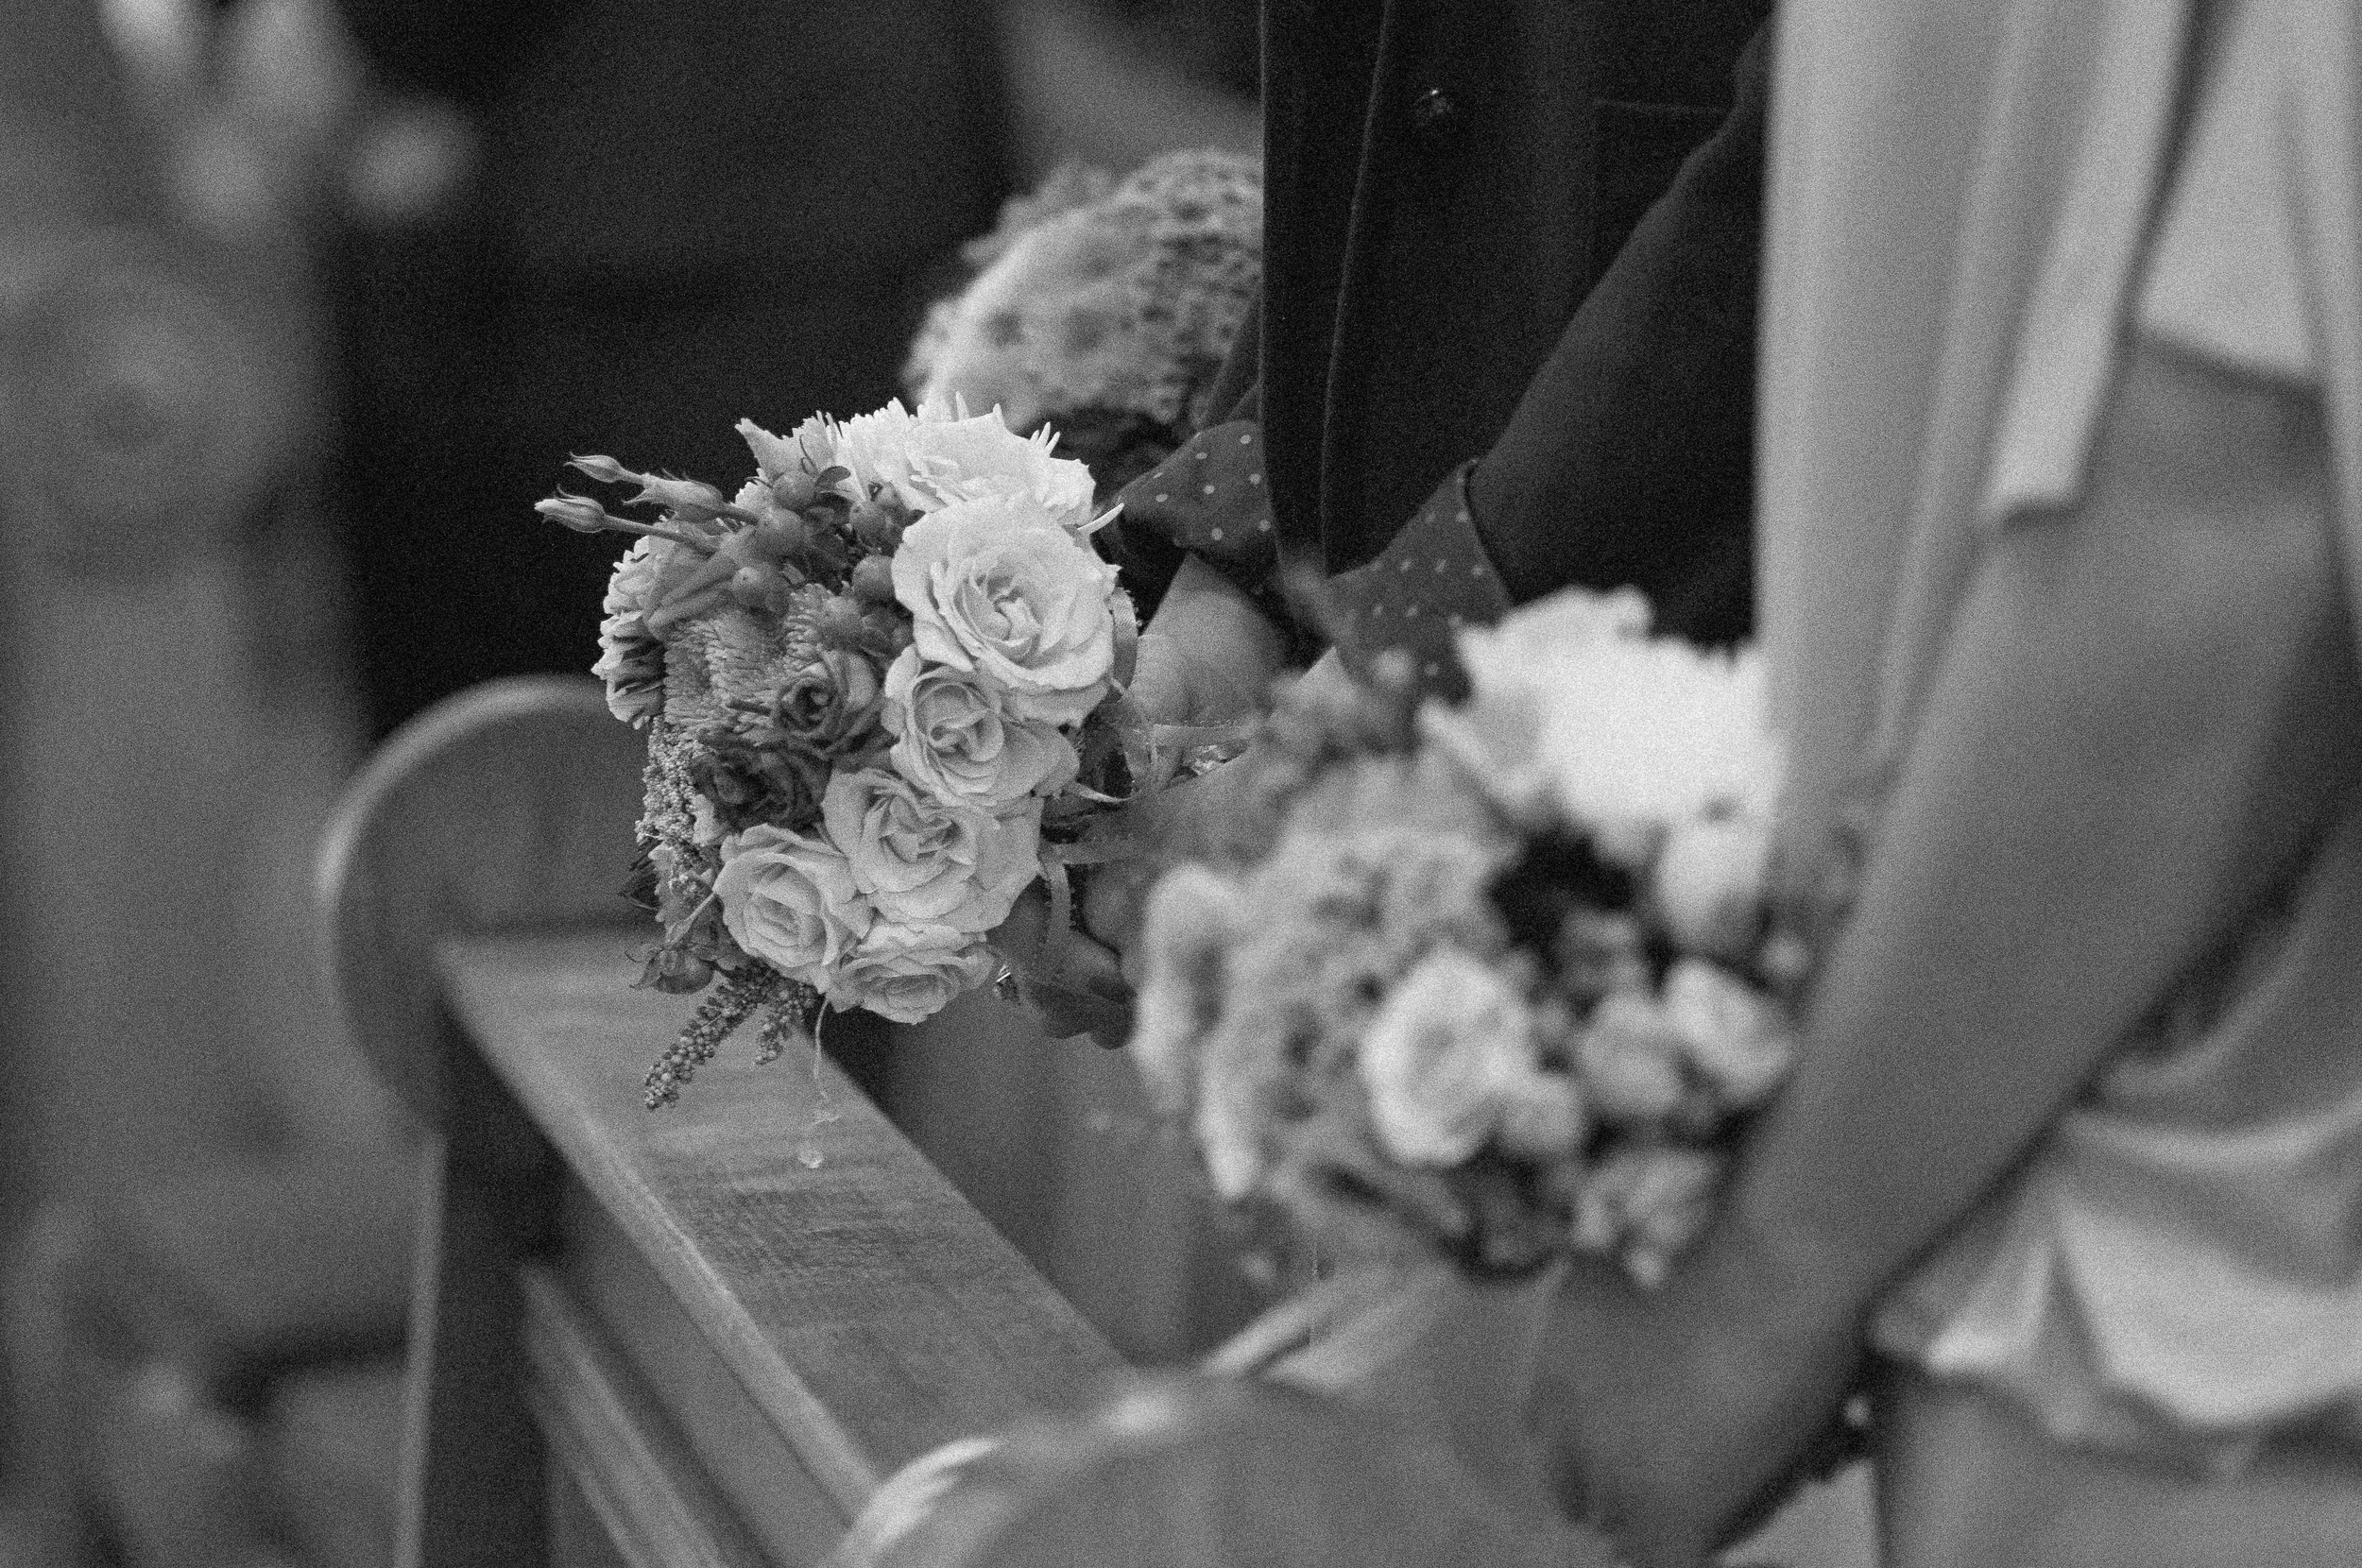 wedding-natural-light-photography-lifestyle-documentary-flowers-church-ceremony-digital-long-island-wedding-photographer.jpg